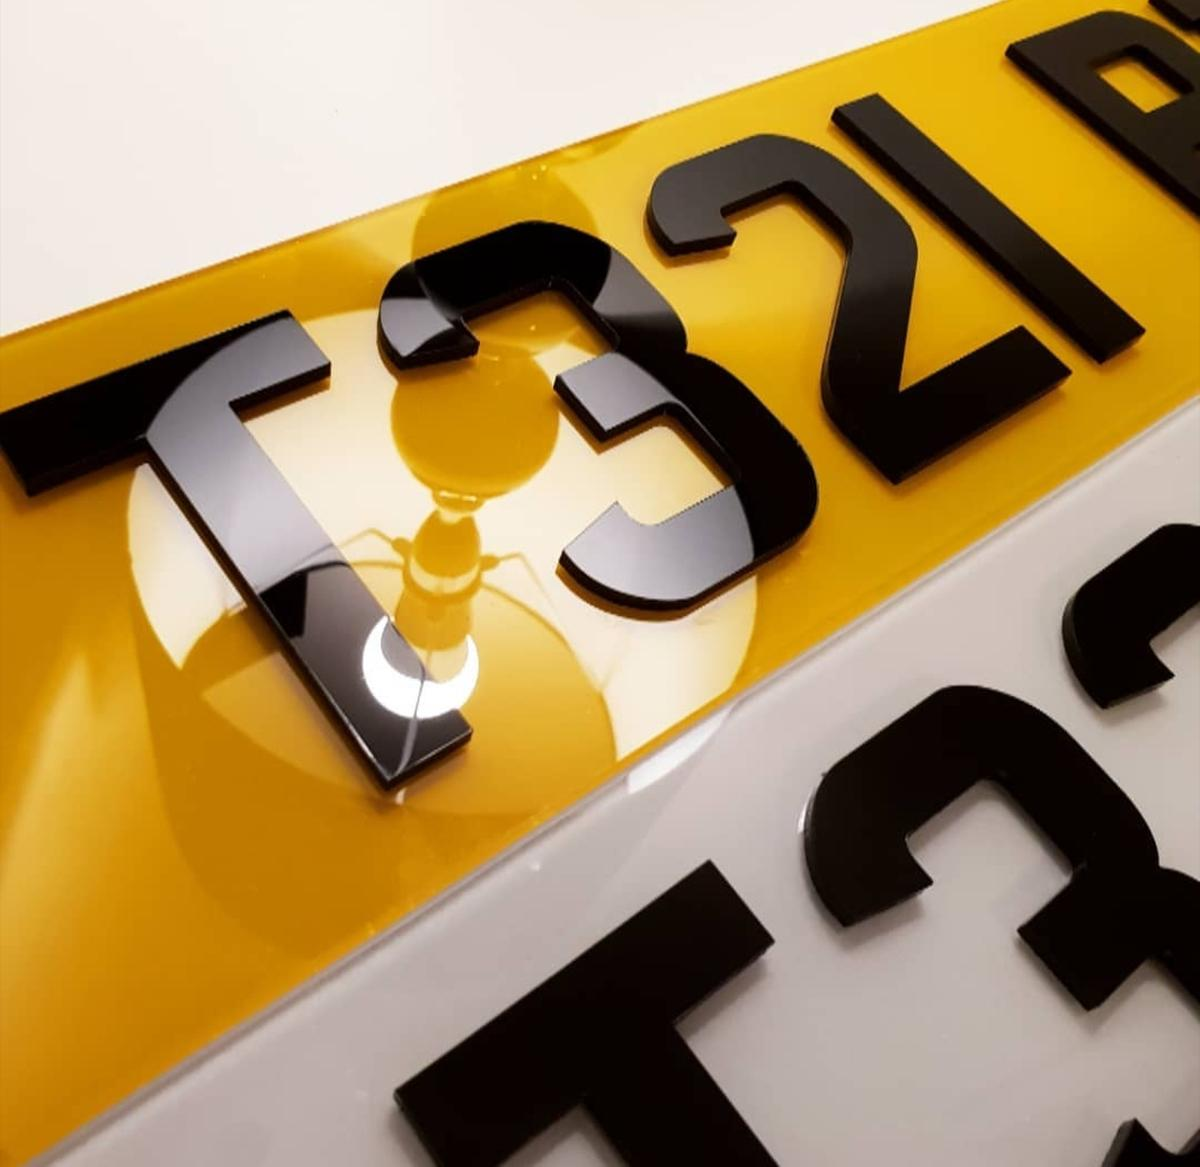 PAIR of 4D Black Acrylic /& Gel Number Plates Front /& Back